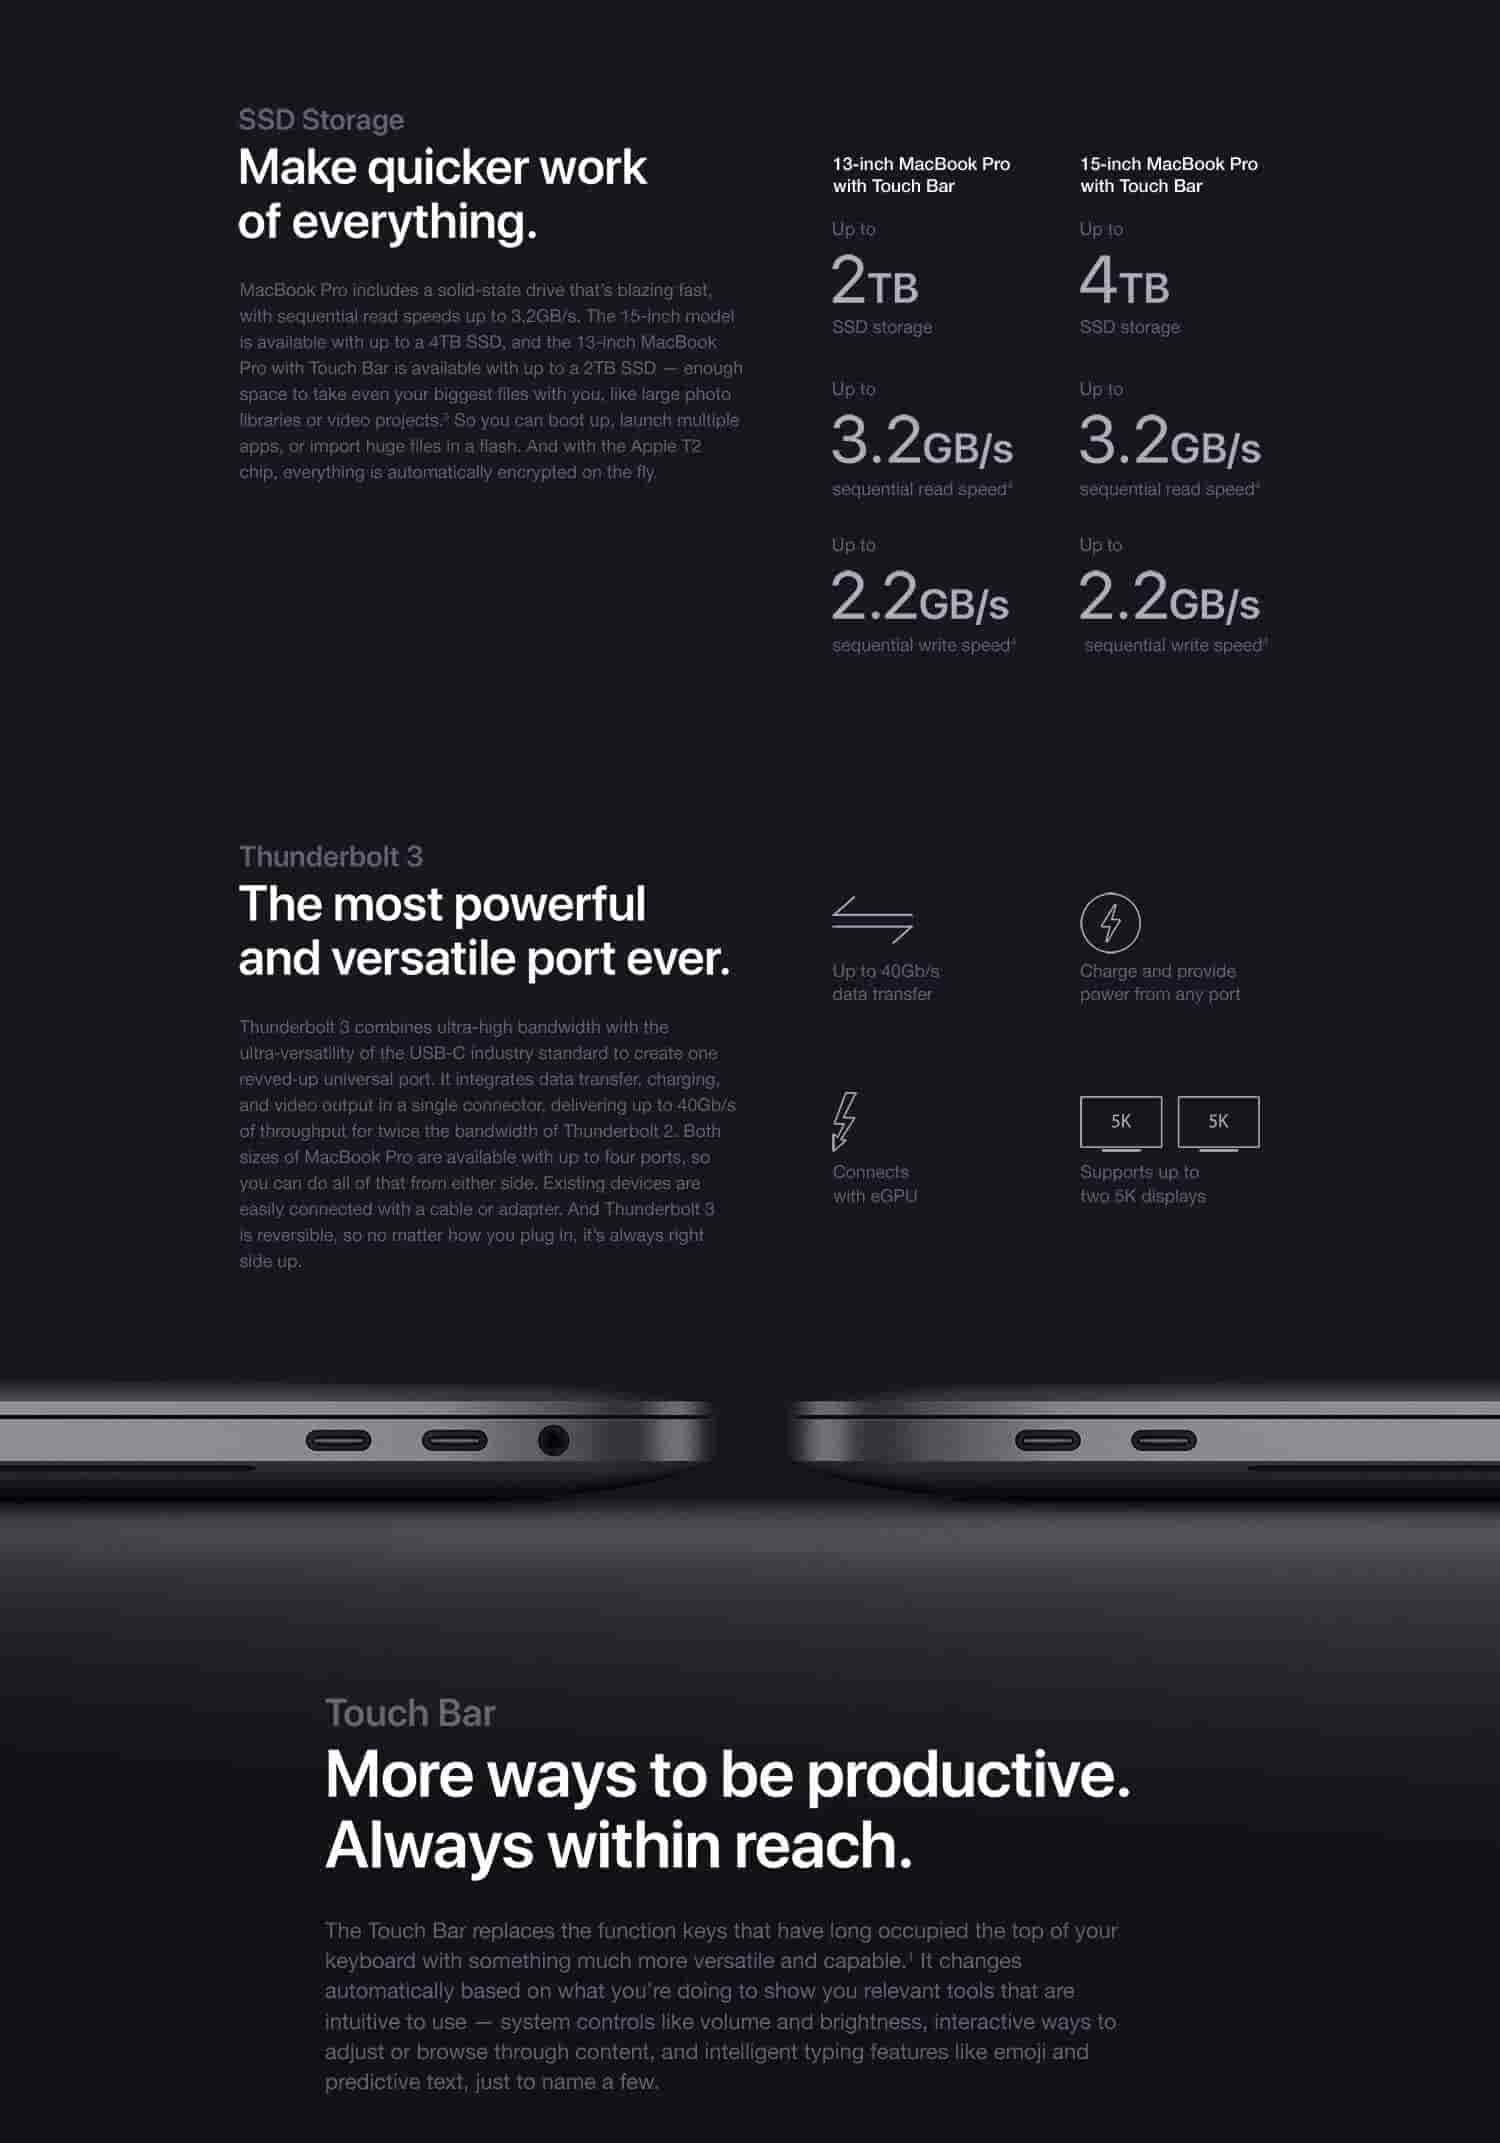 How to make presentations on macbook pro fast 2020 charge